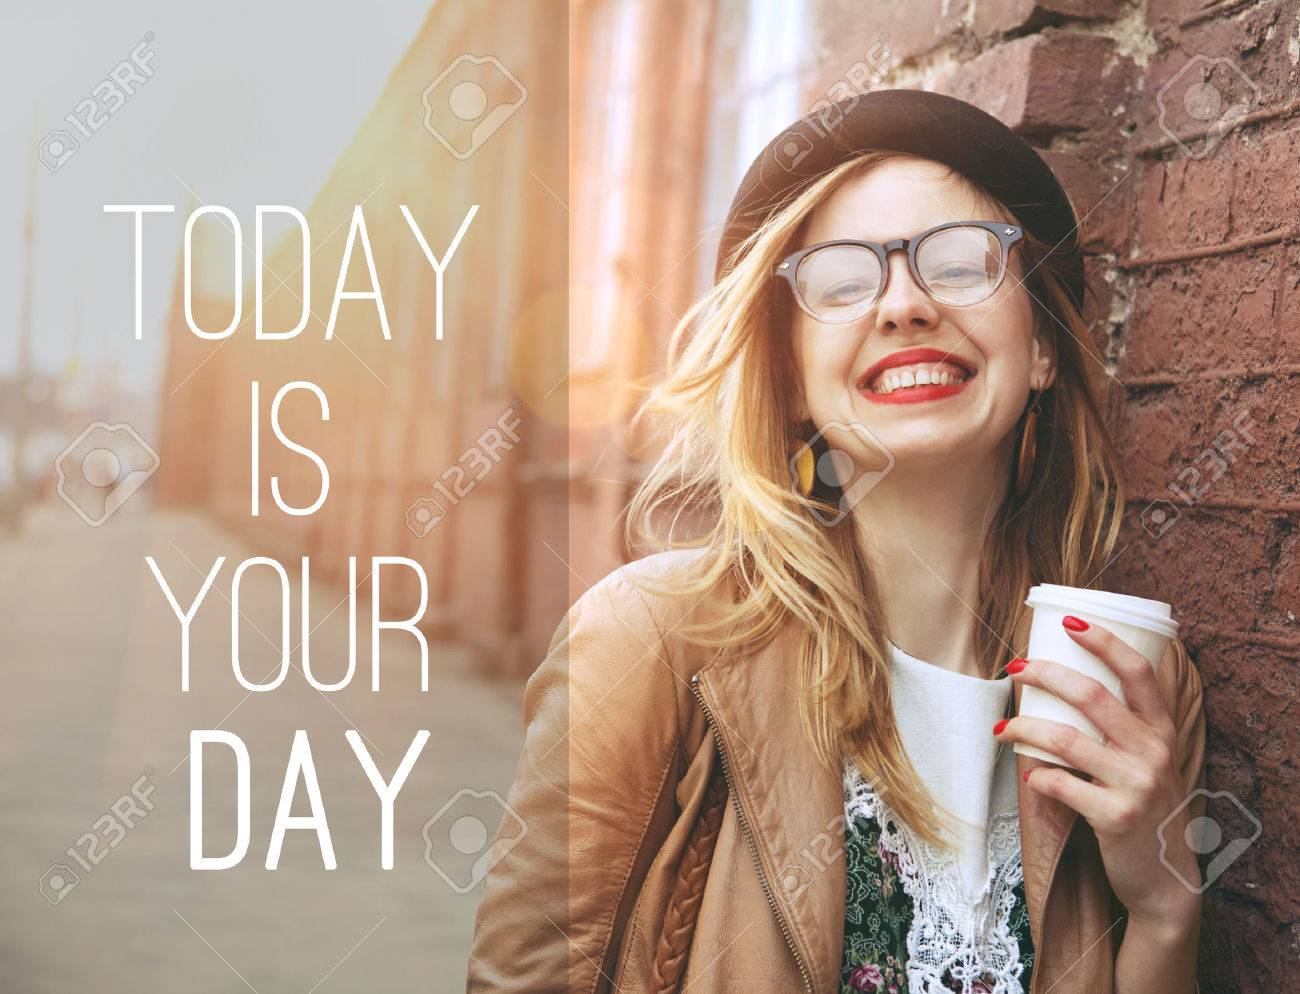 Woman in the street drinking morning coffee in sunshine light with motivational text Stock Photo - 46656423